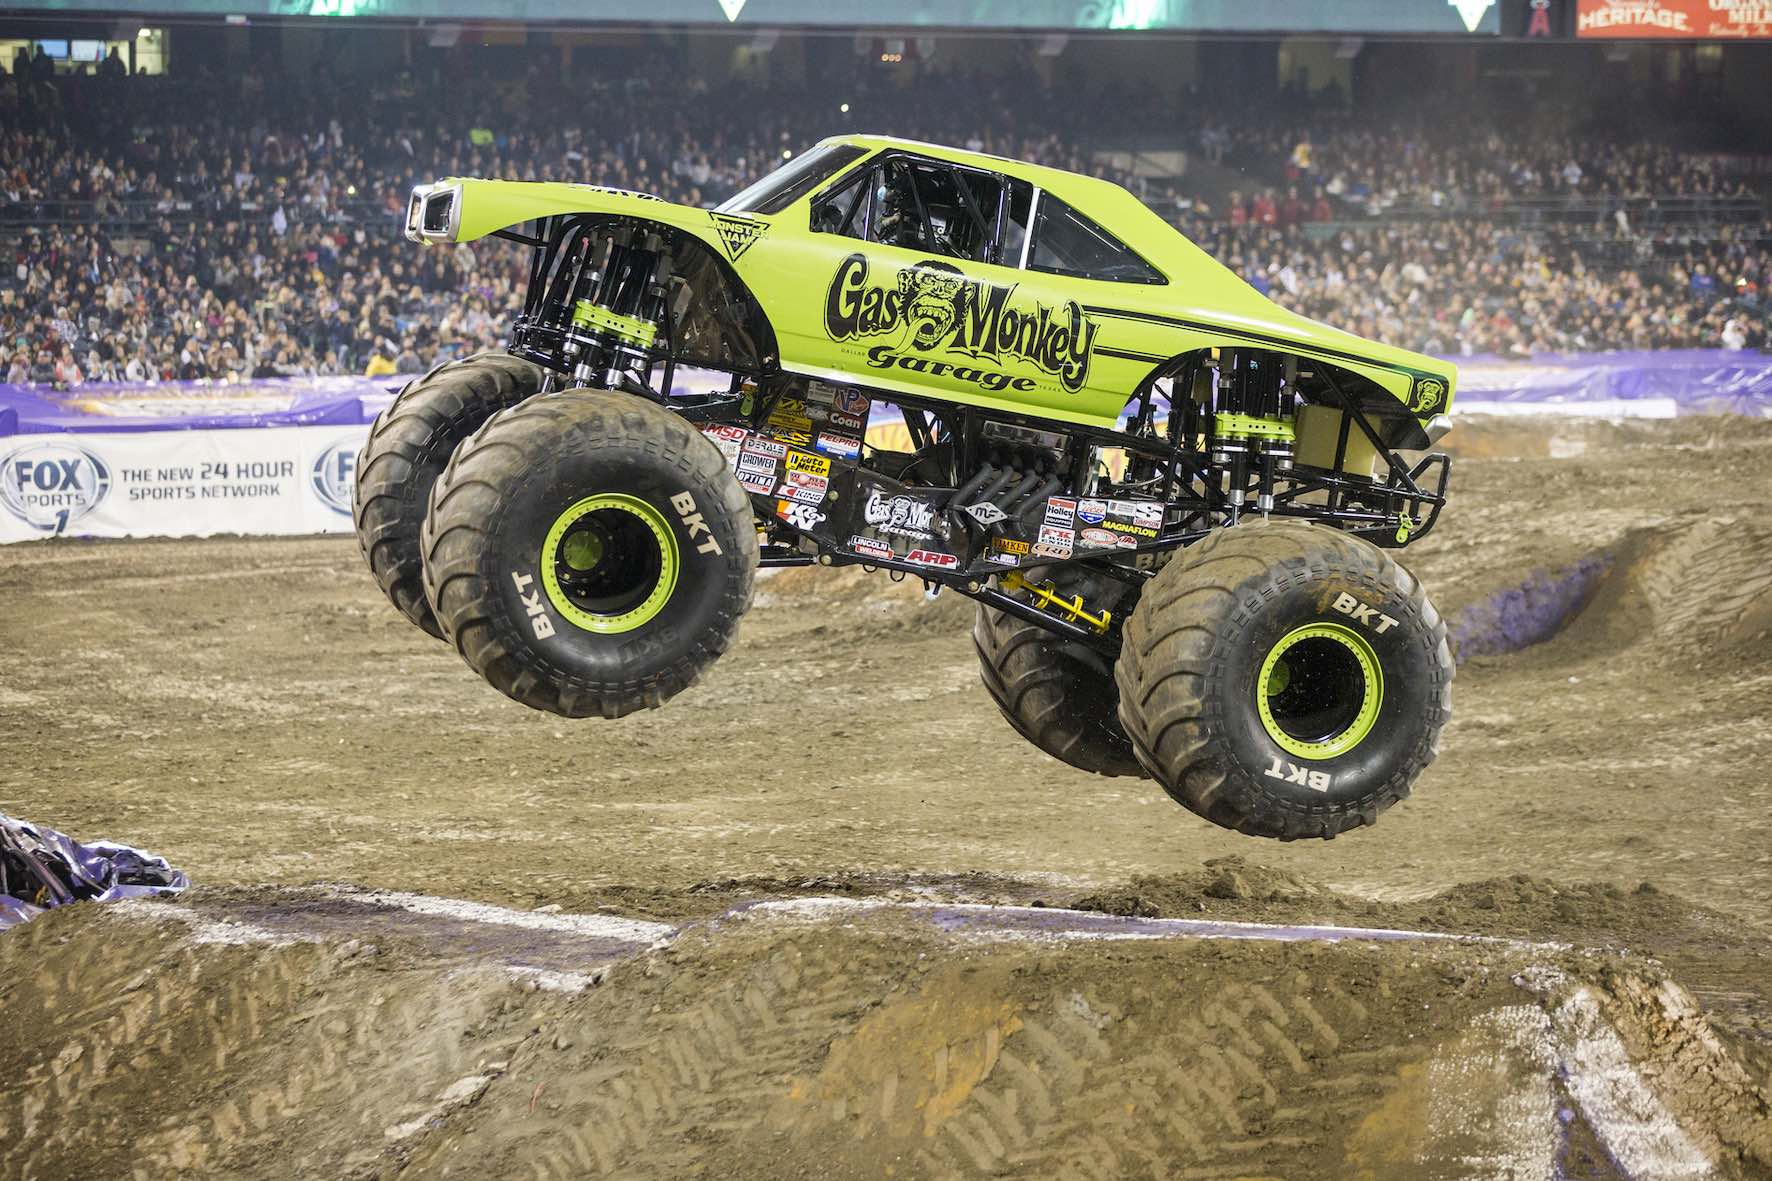 The Gas Monkey Garage Monster Truck is set to perform at Monster Jam in South Africa